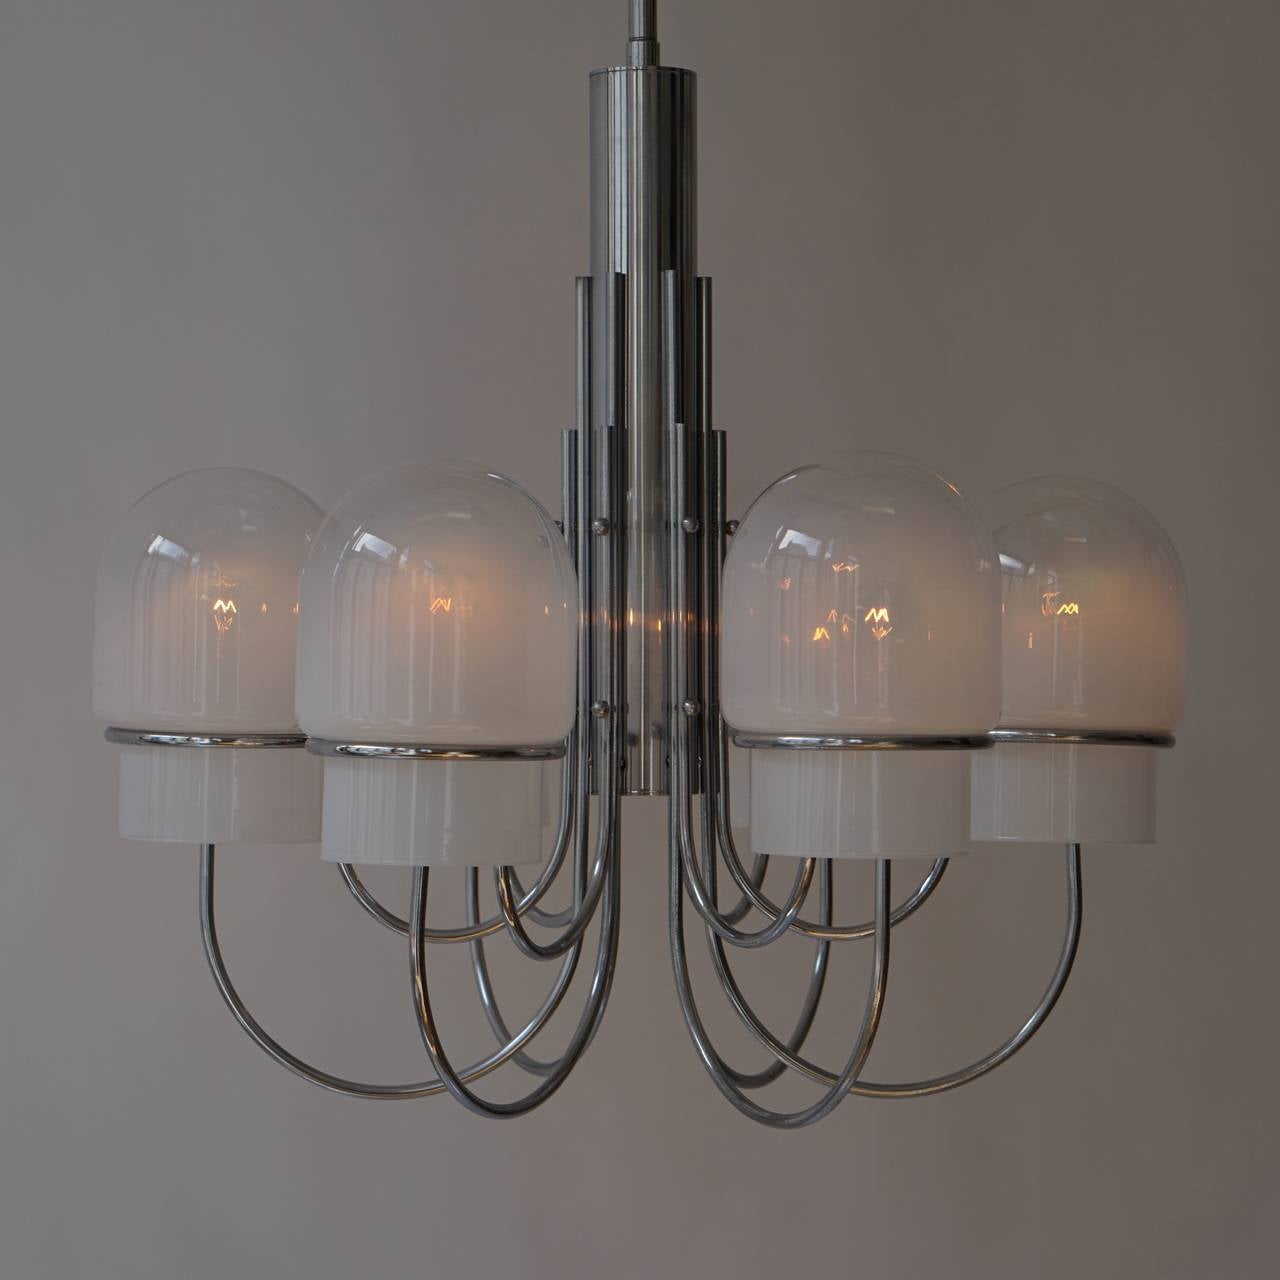 Italian Six Arched Arm Chrome and Milk Glass Chandelier, circa 1960s For Sale 1